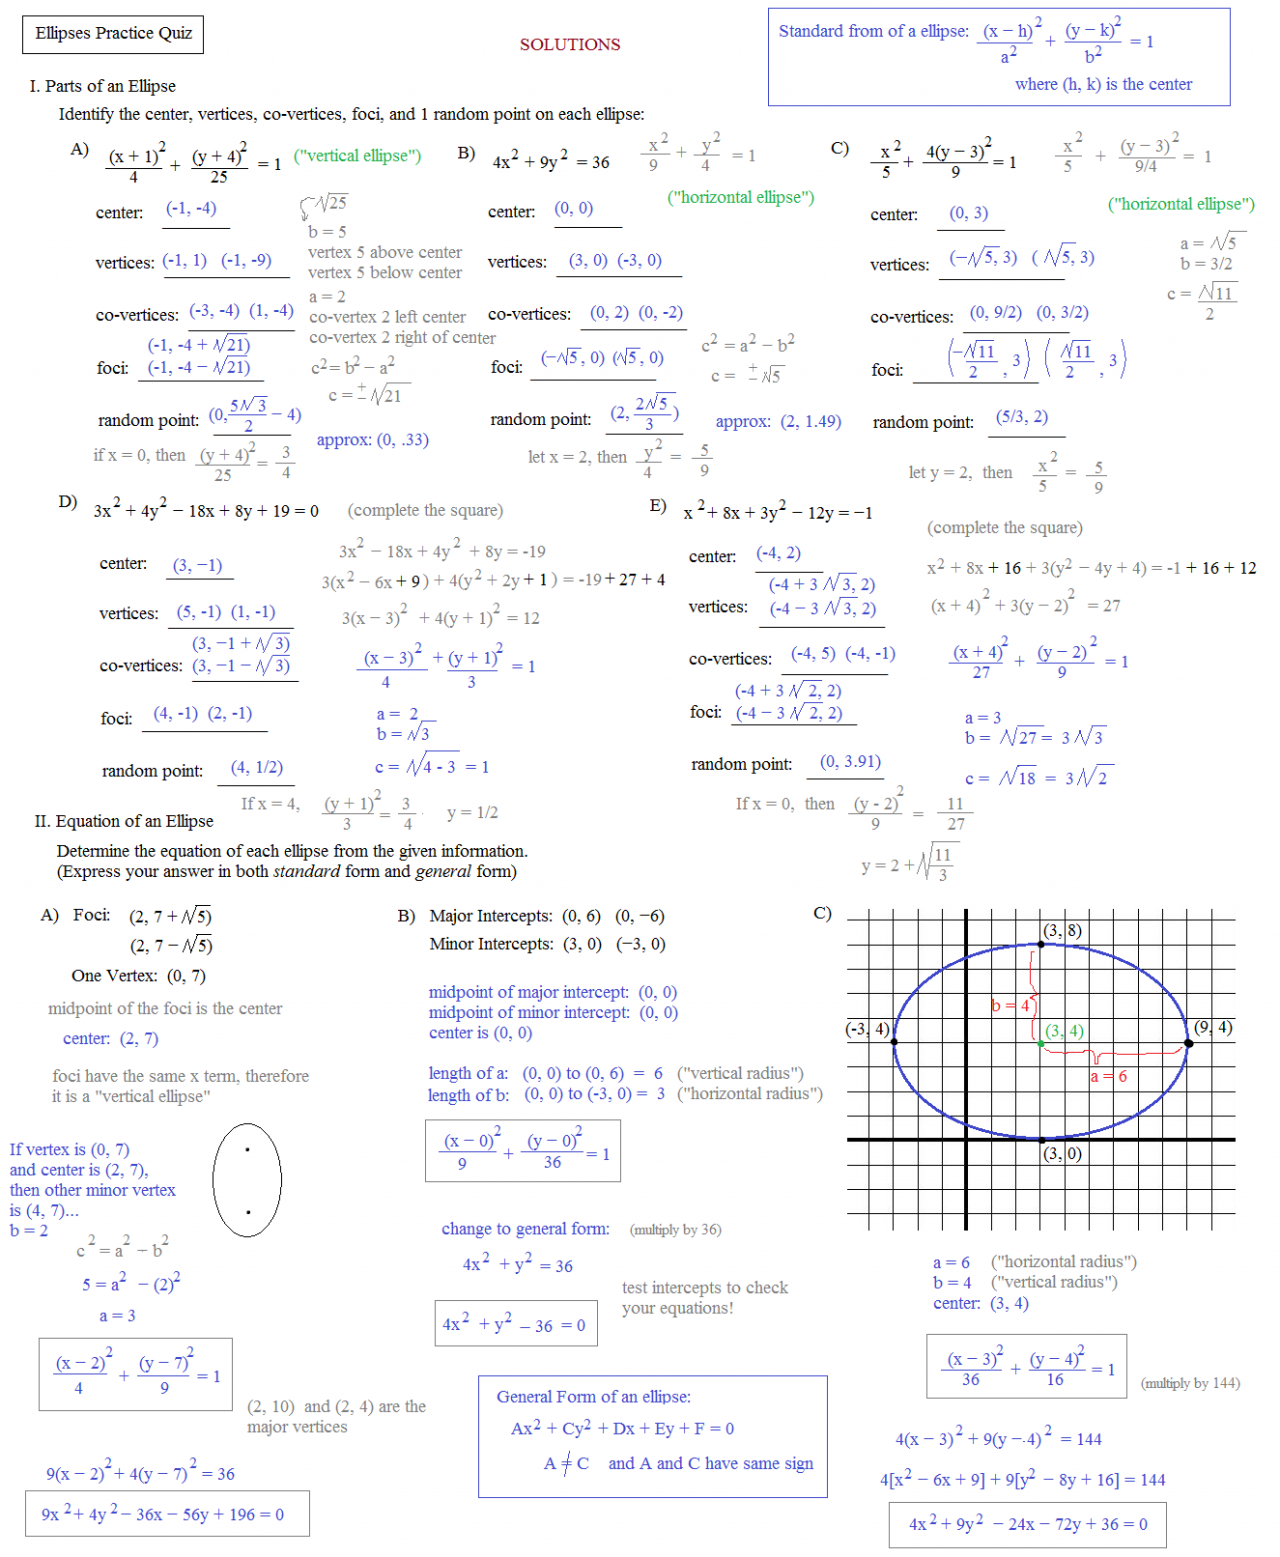 worksheet Ellipses Worksheet math plane conics i circles ellipses ellipse practice quiz solutions